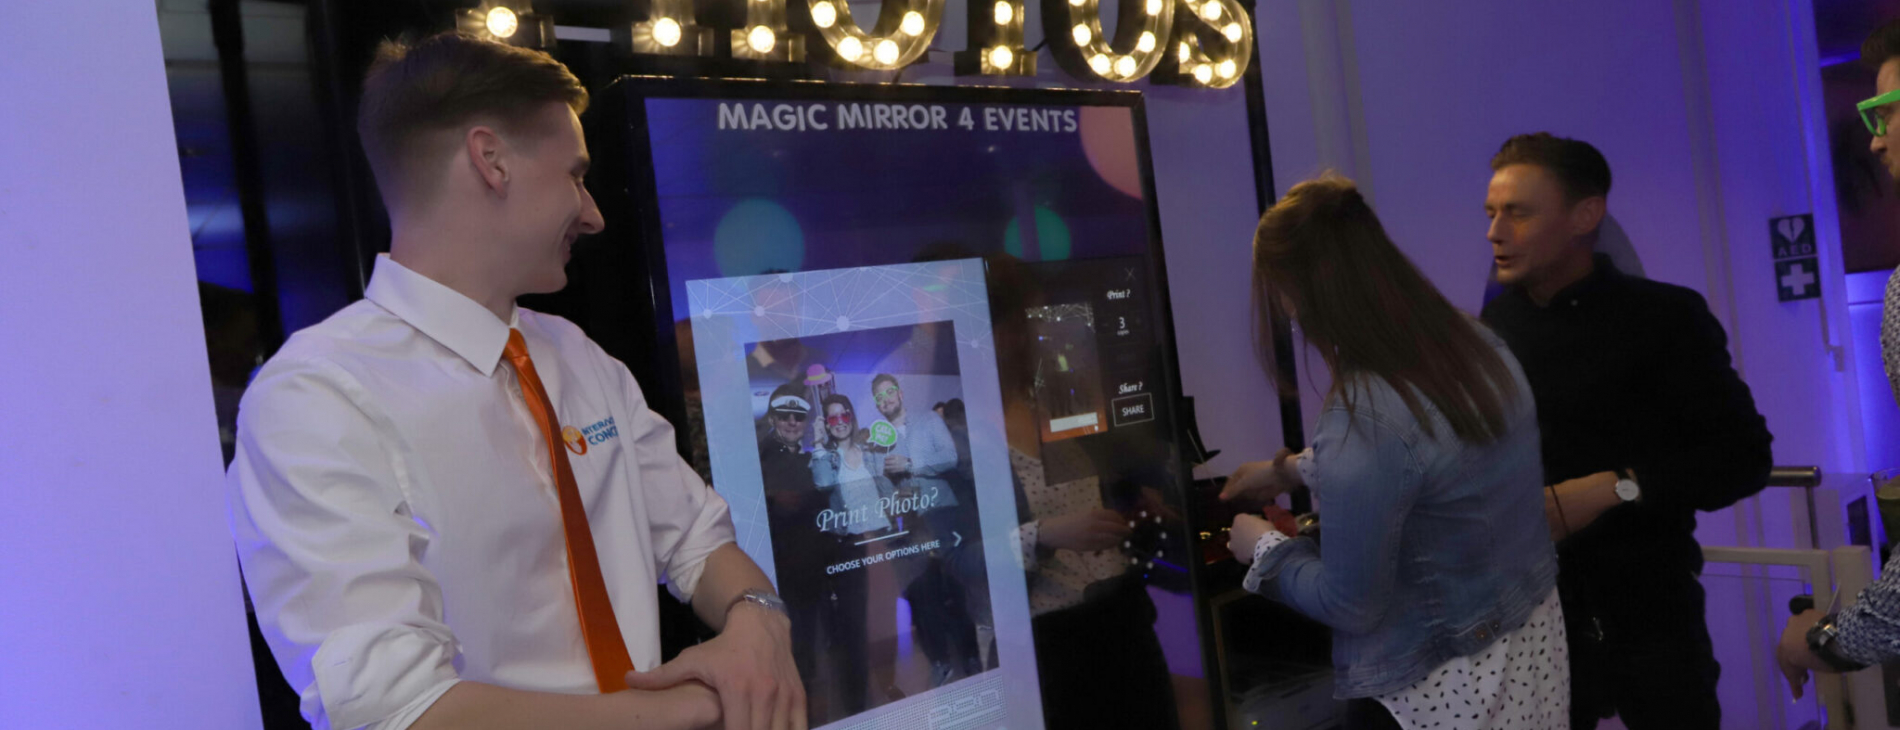 magic mirror fotospiegel met host